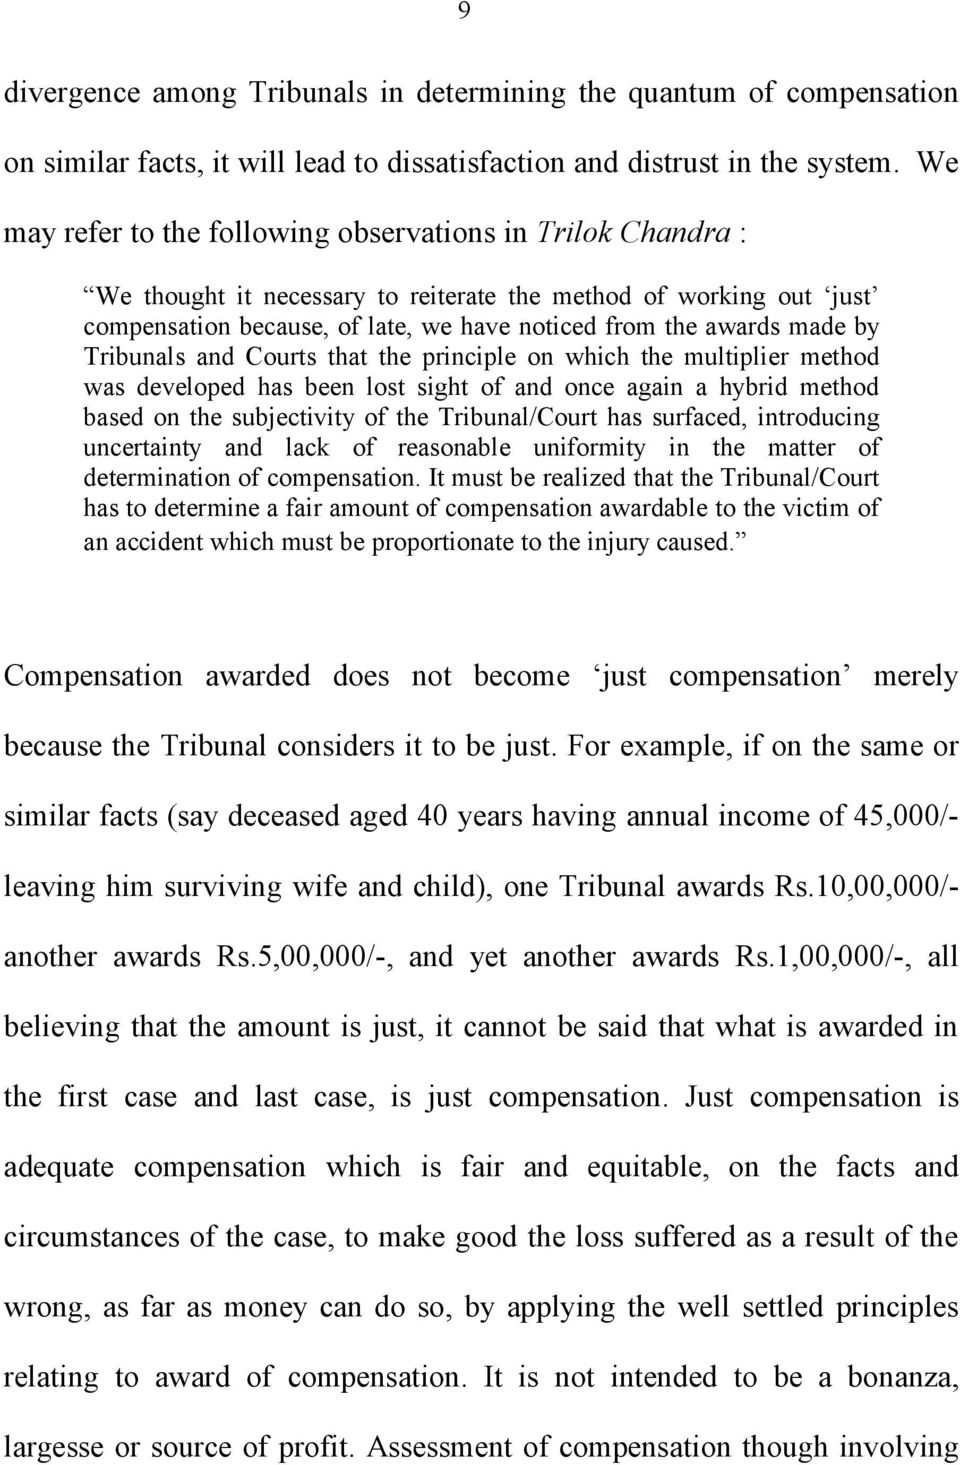 by Tribunals and Courts that the principle on which the multiplier method was developed has been lost sight of and once again a hybrid method based on the subjectivity of the Tribunal/Court has